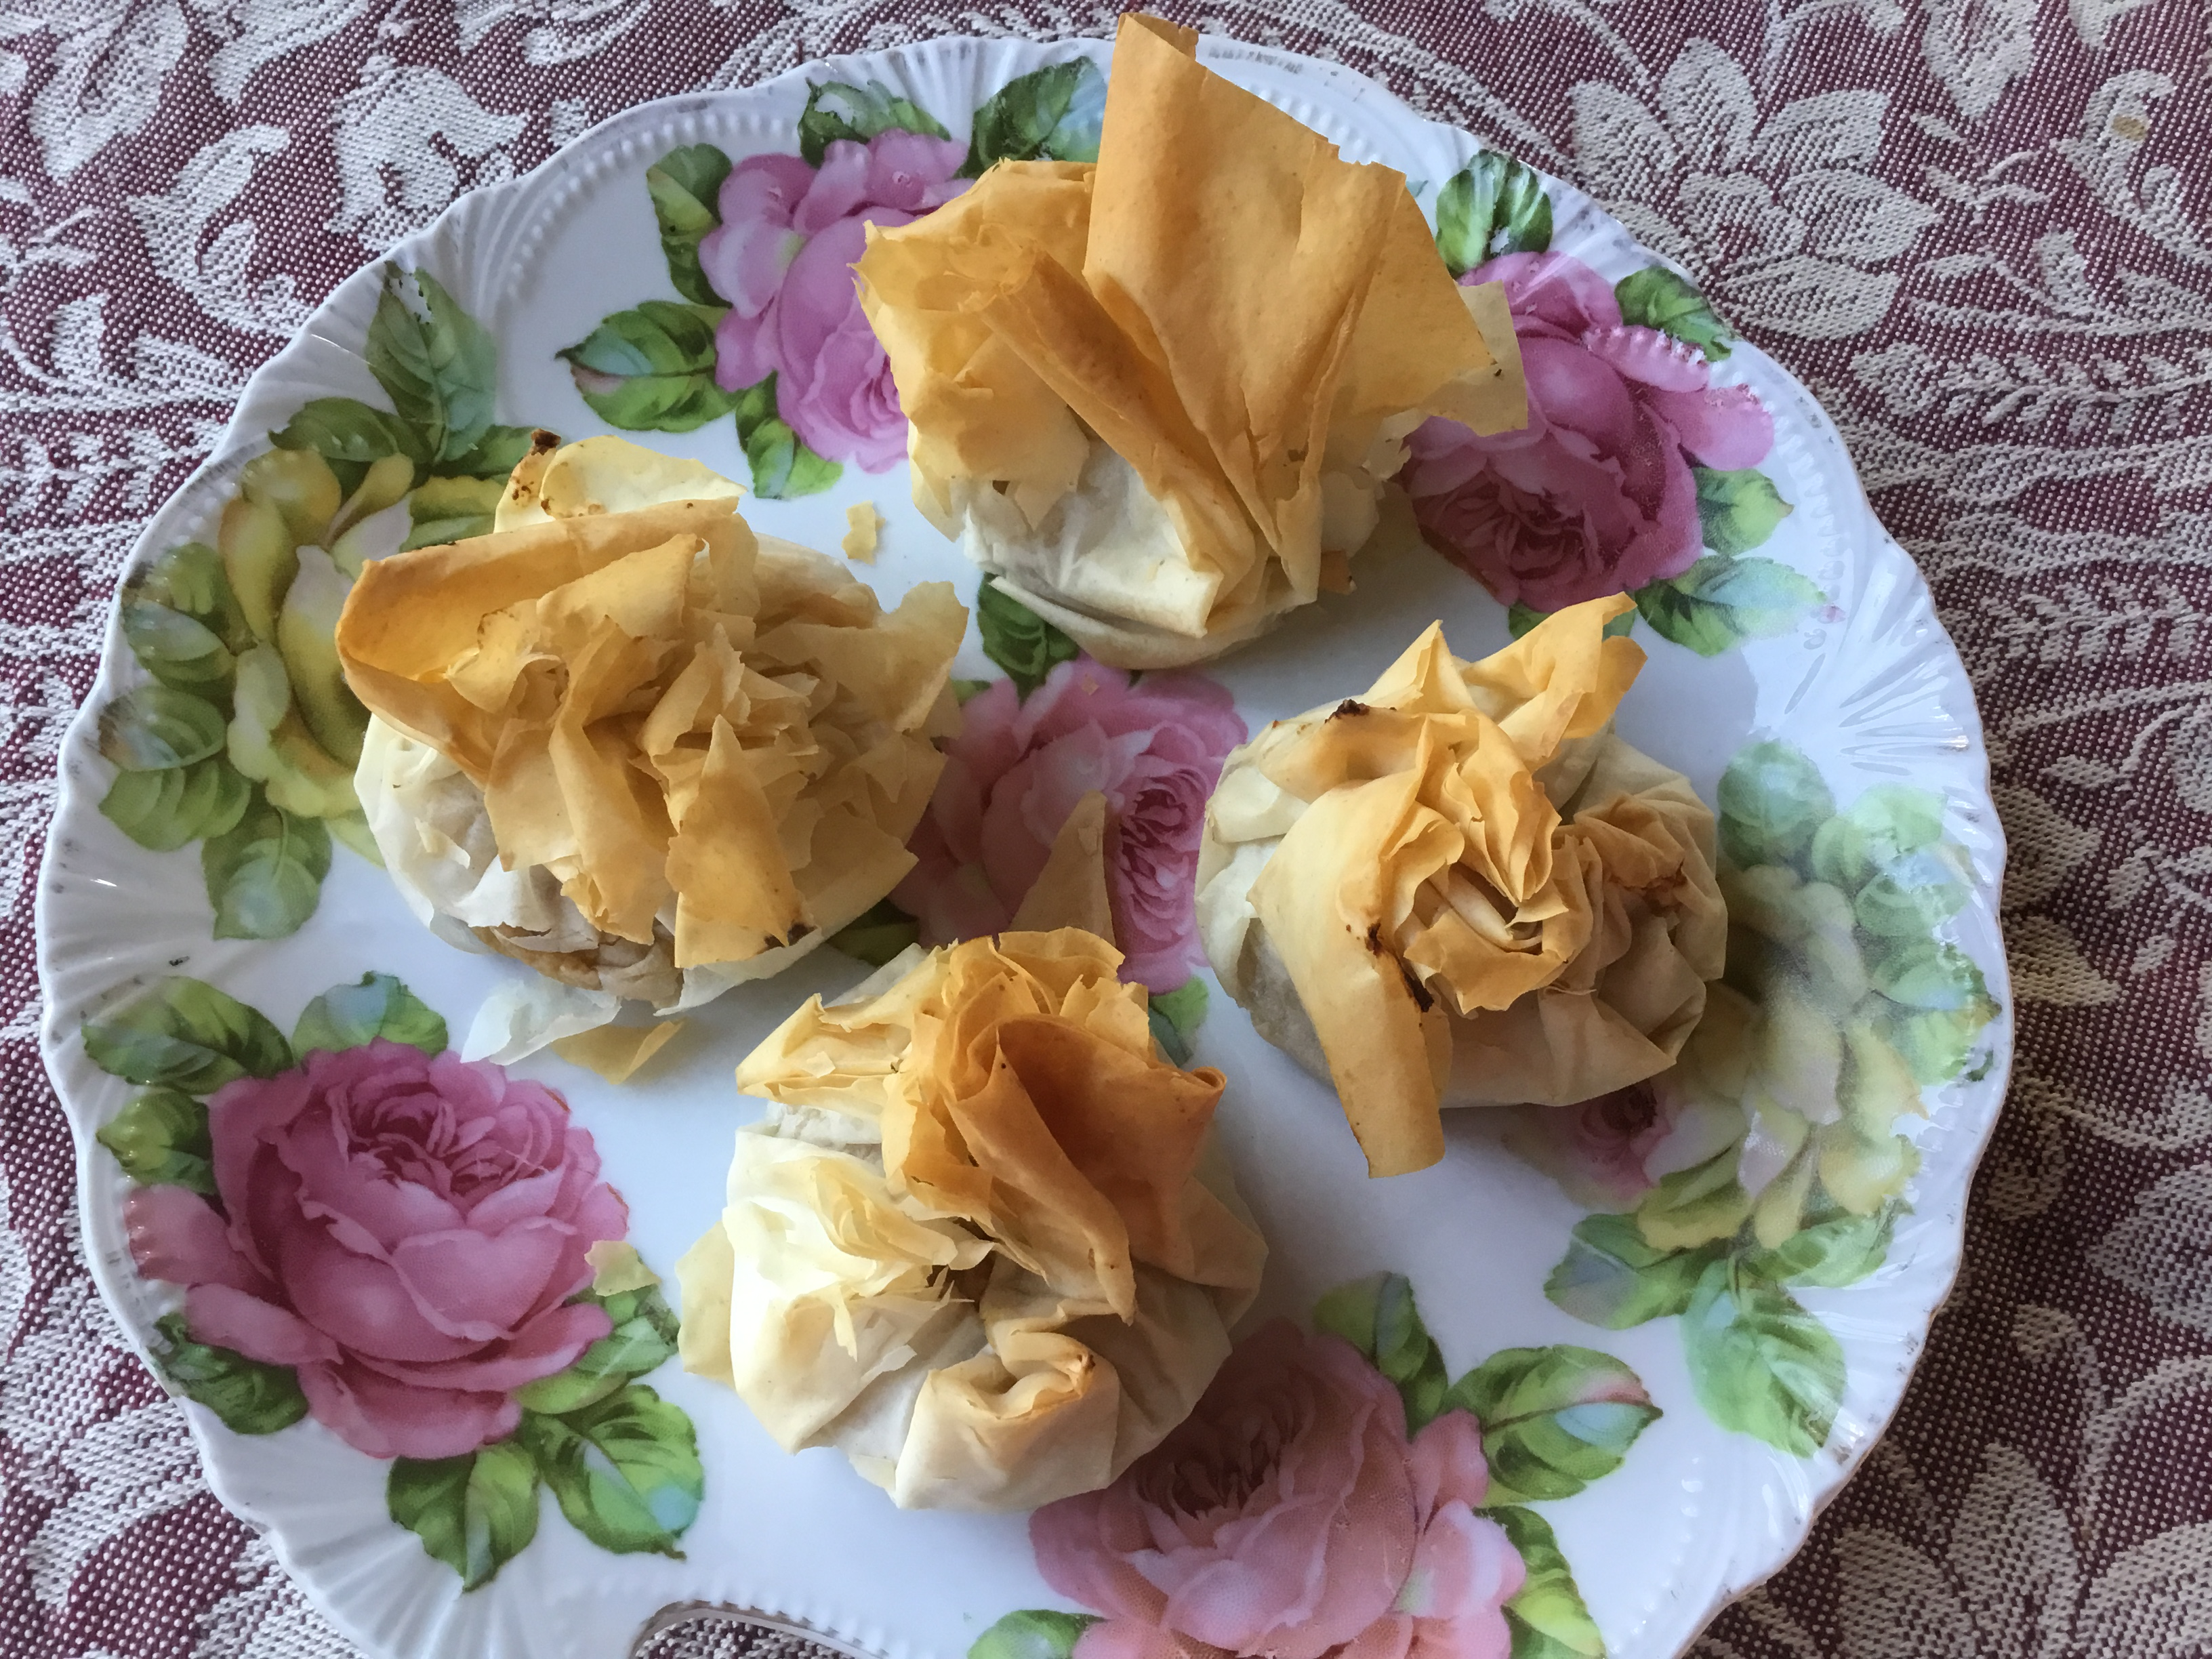 Leftover Phyllo Dough Pastries nch